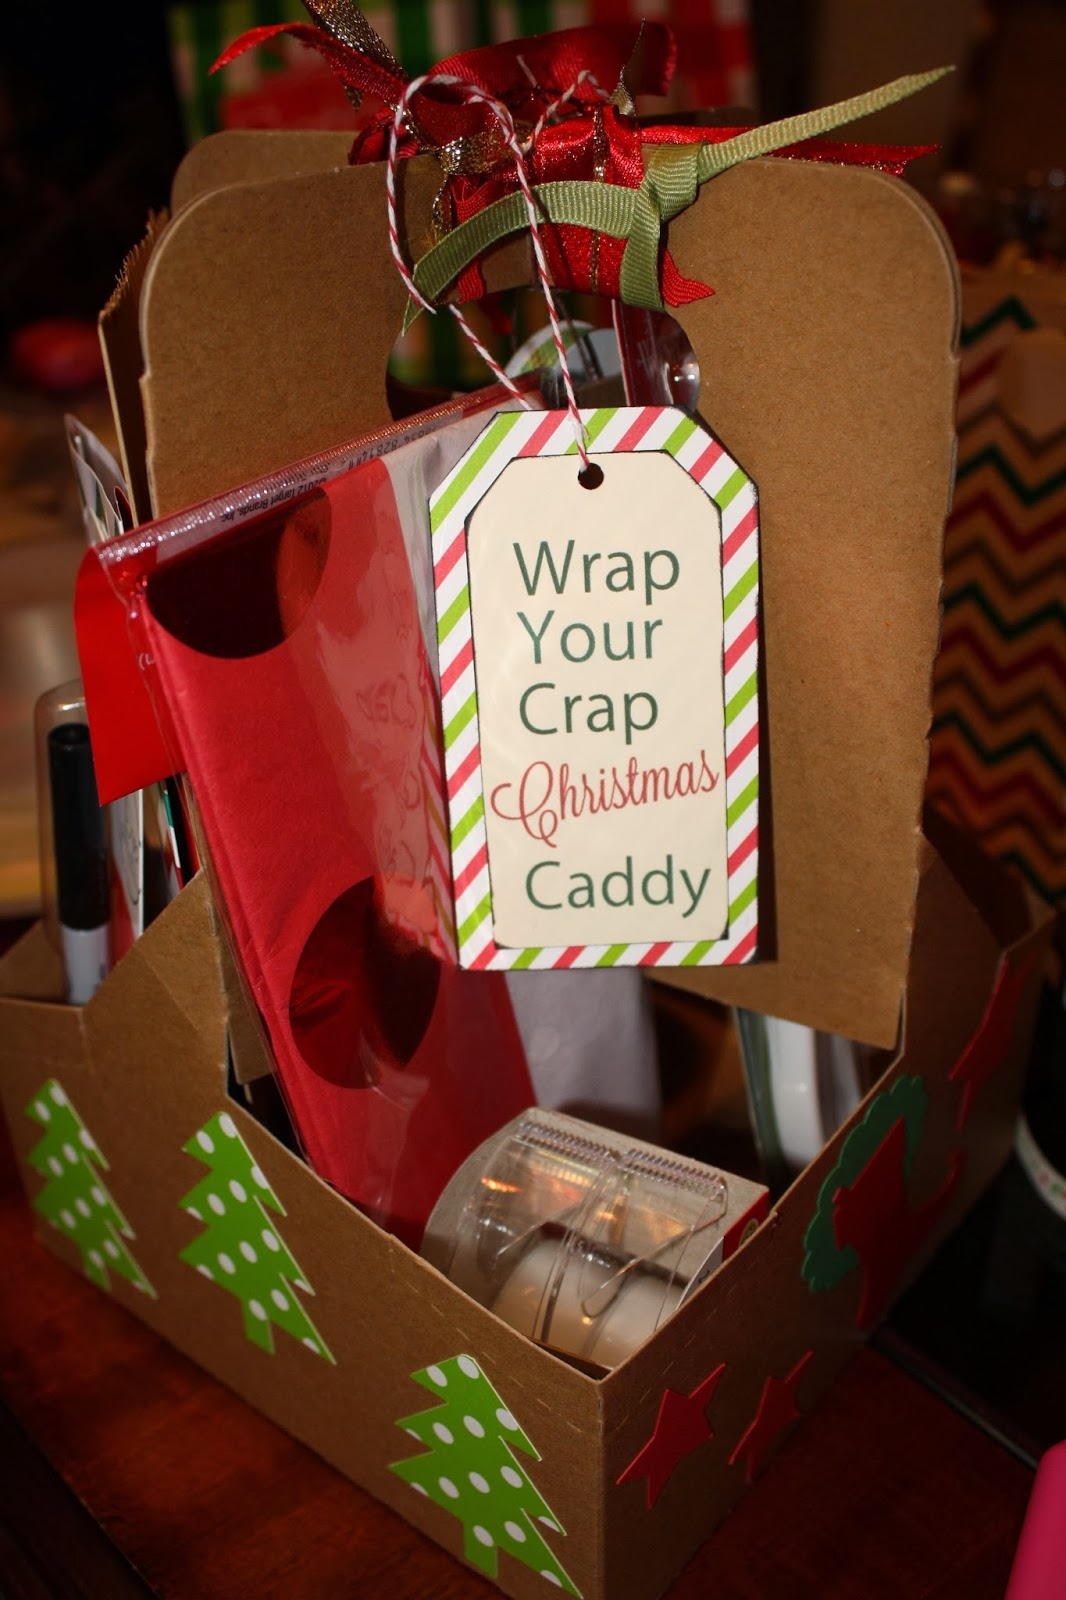 Our Final Cost Of The Caddy Came To About 10 With Most Items Being 1 Expensive Item Was Scissors At 3 But Holiday Themed Ones We Used